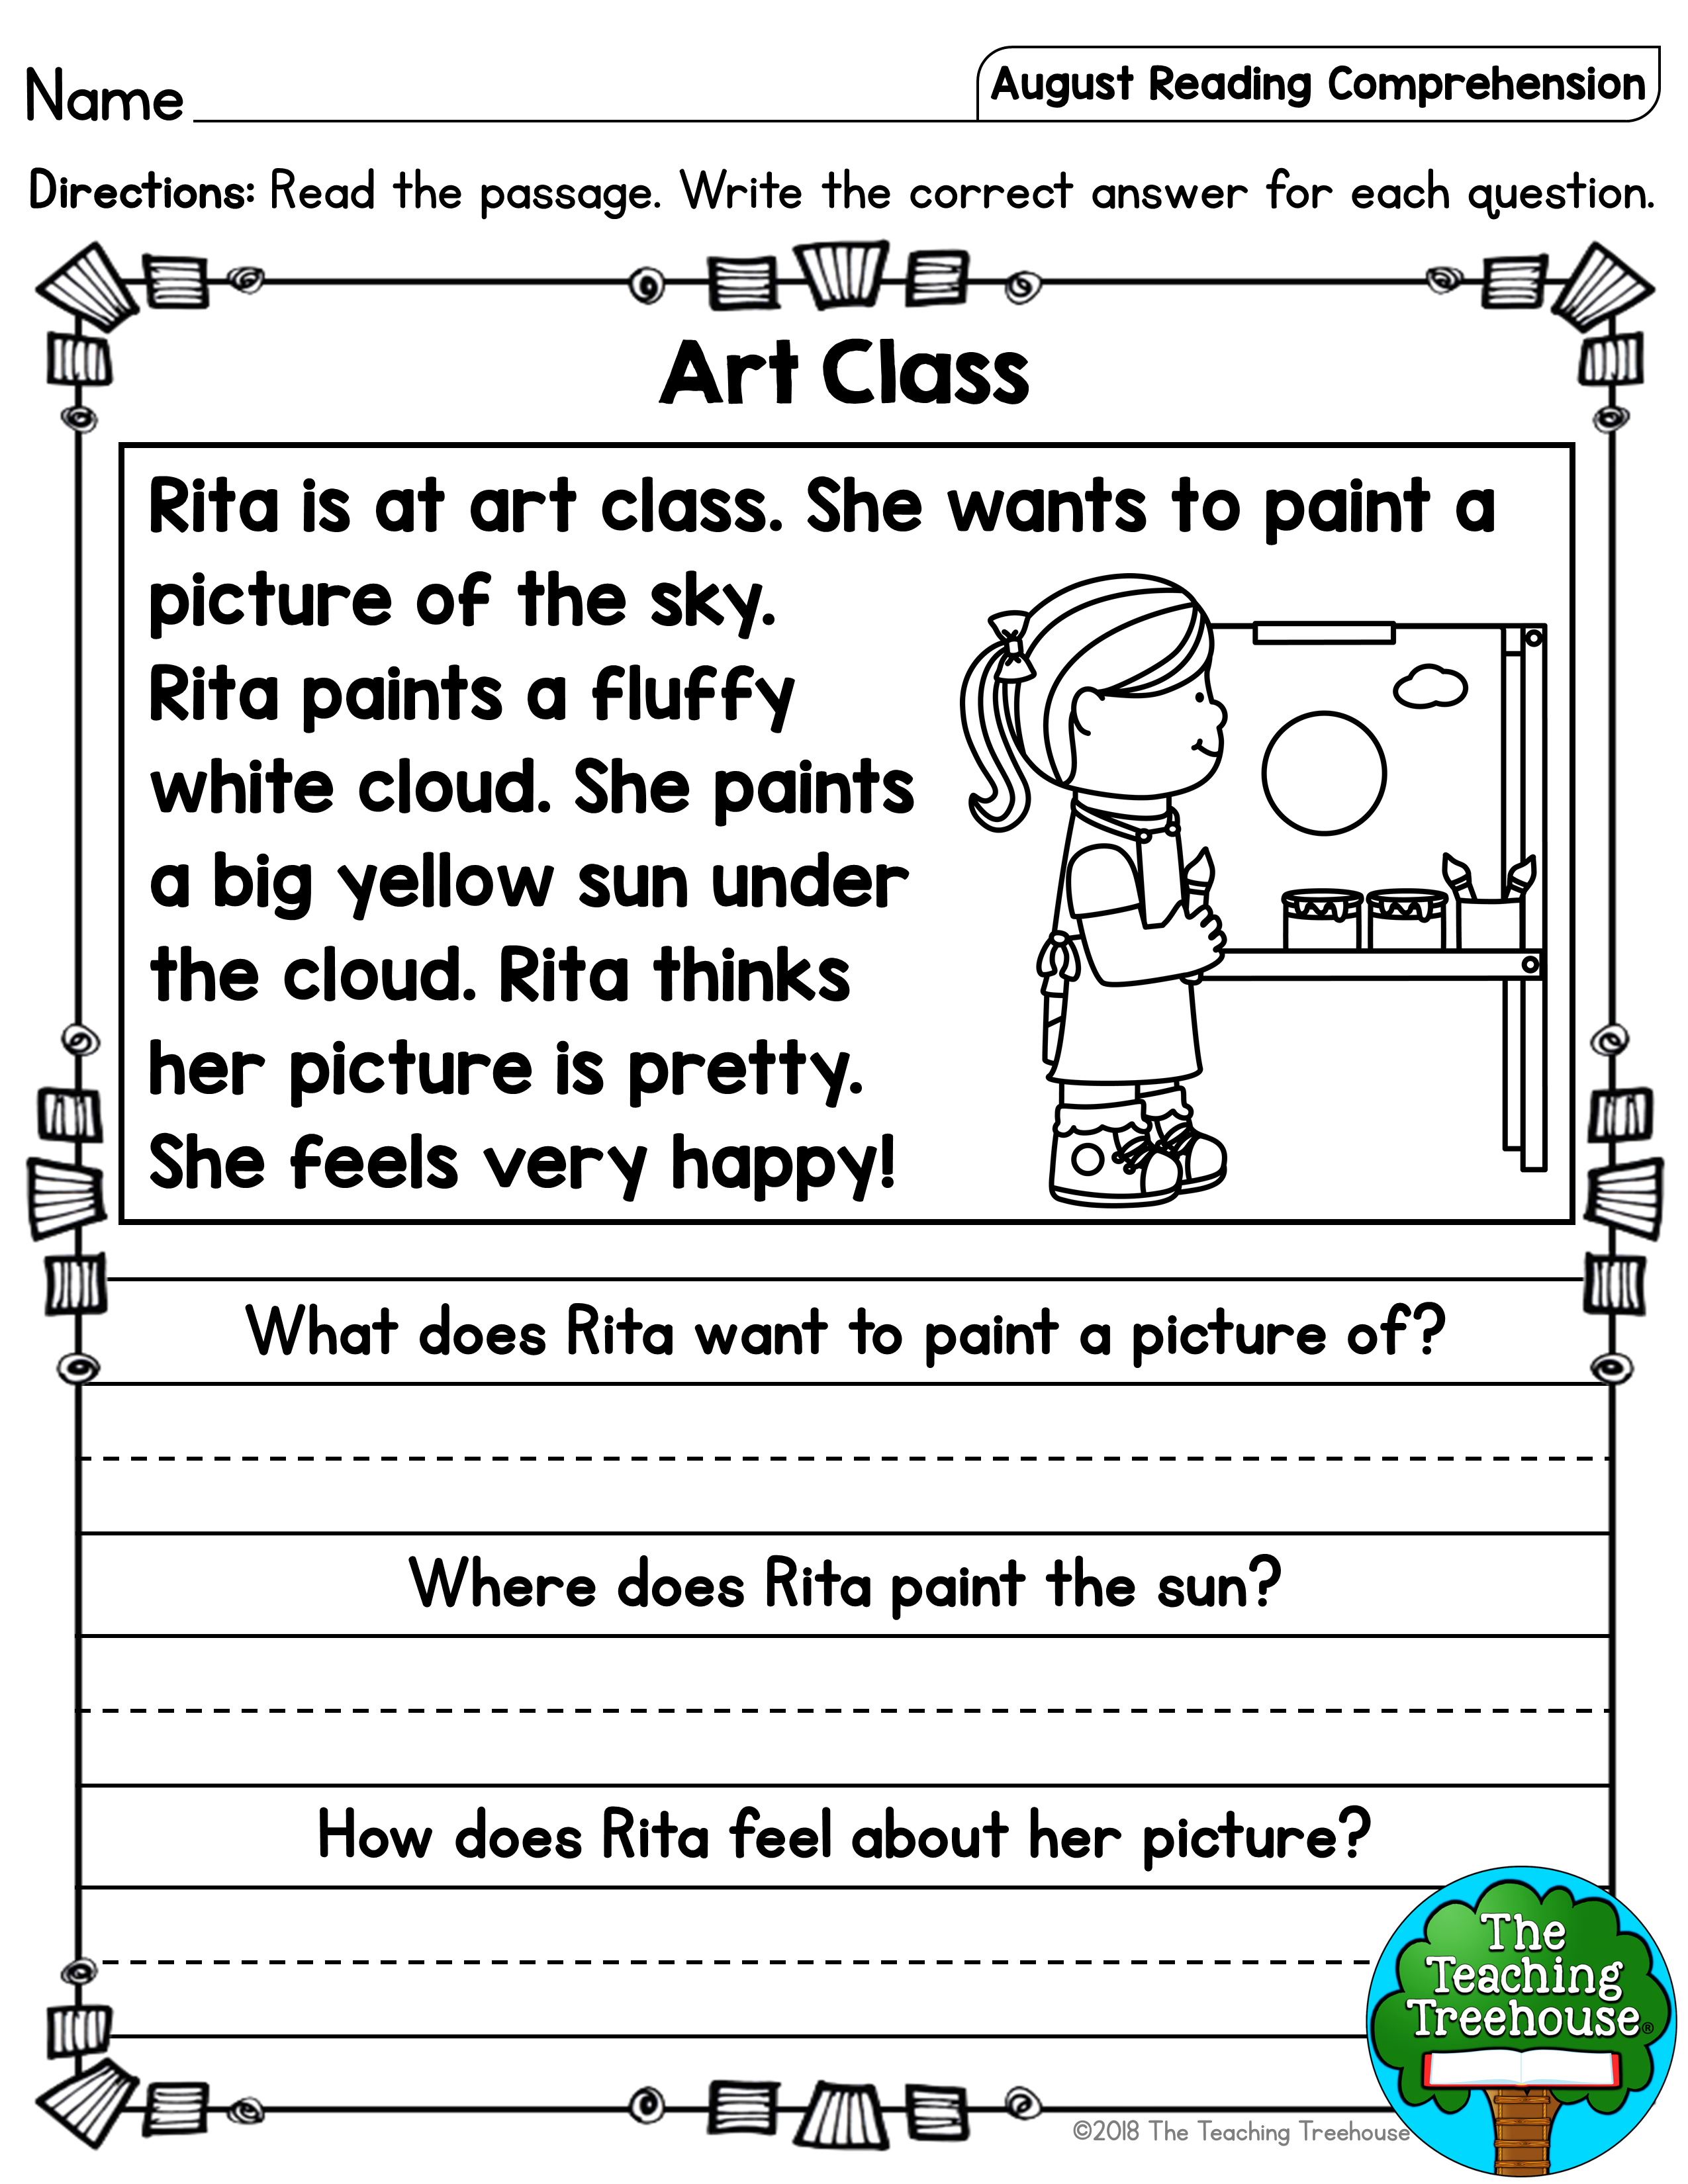 August Reading Comprehension Passages For Kindergarten And First